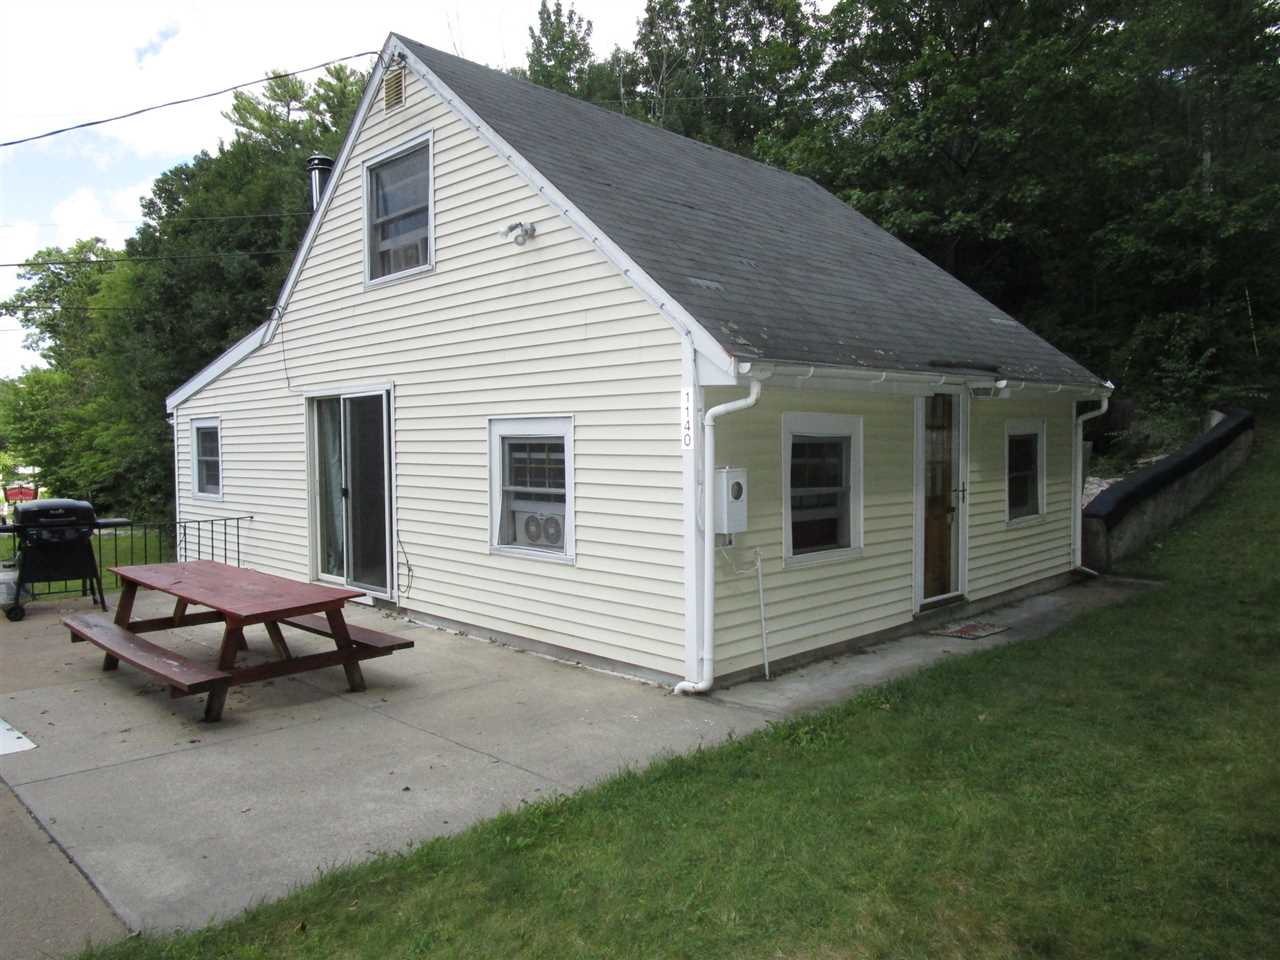 Homes and Property for Rent in Bristol NH - Newfound ...